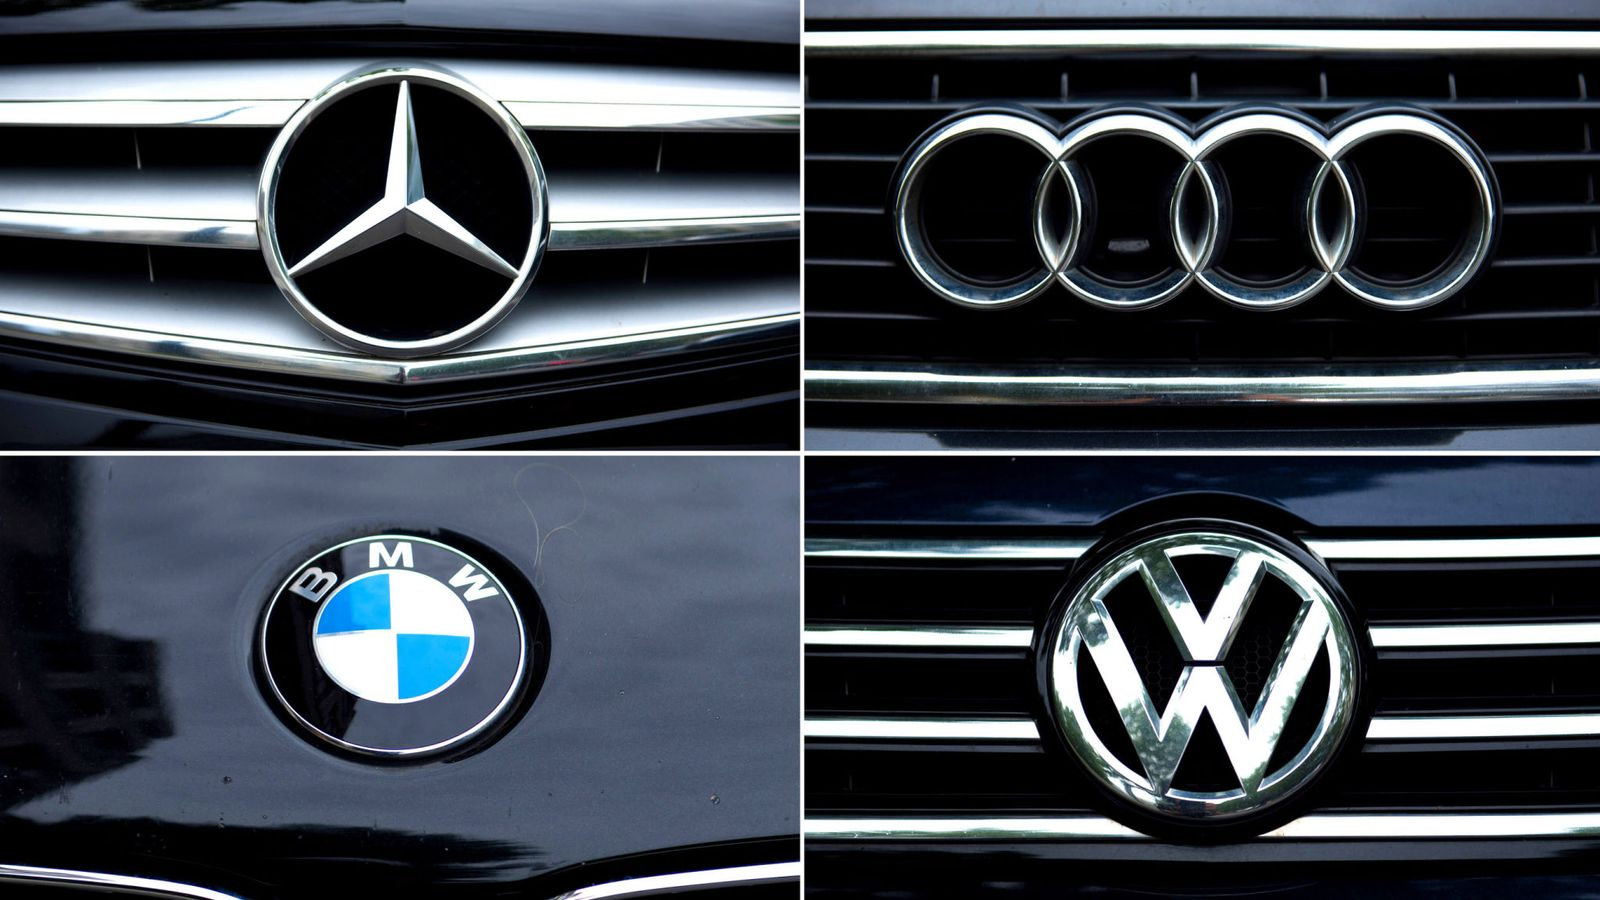 BMW, Daimler and Volkswagen fined €100m after forming cartel to buy steel